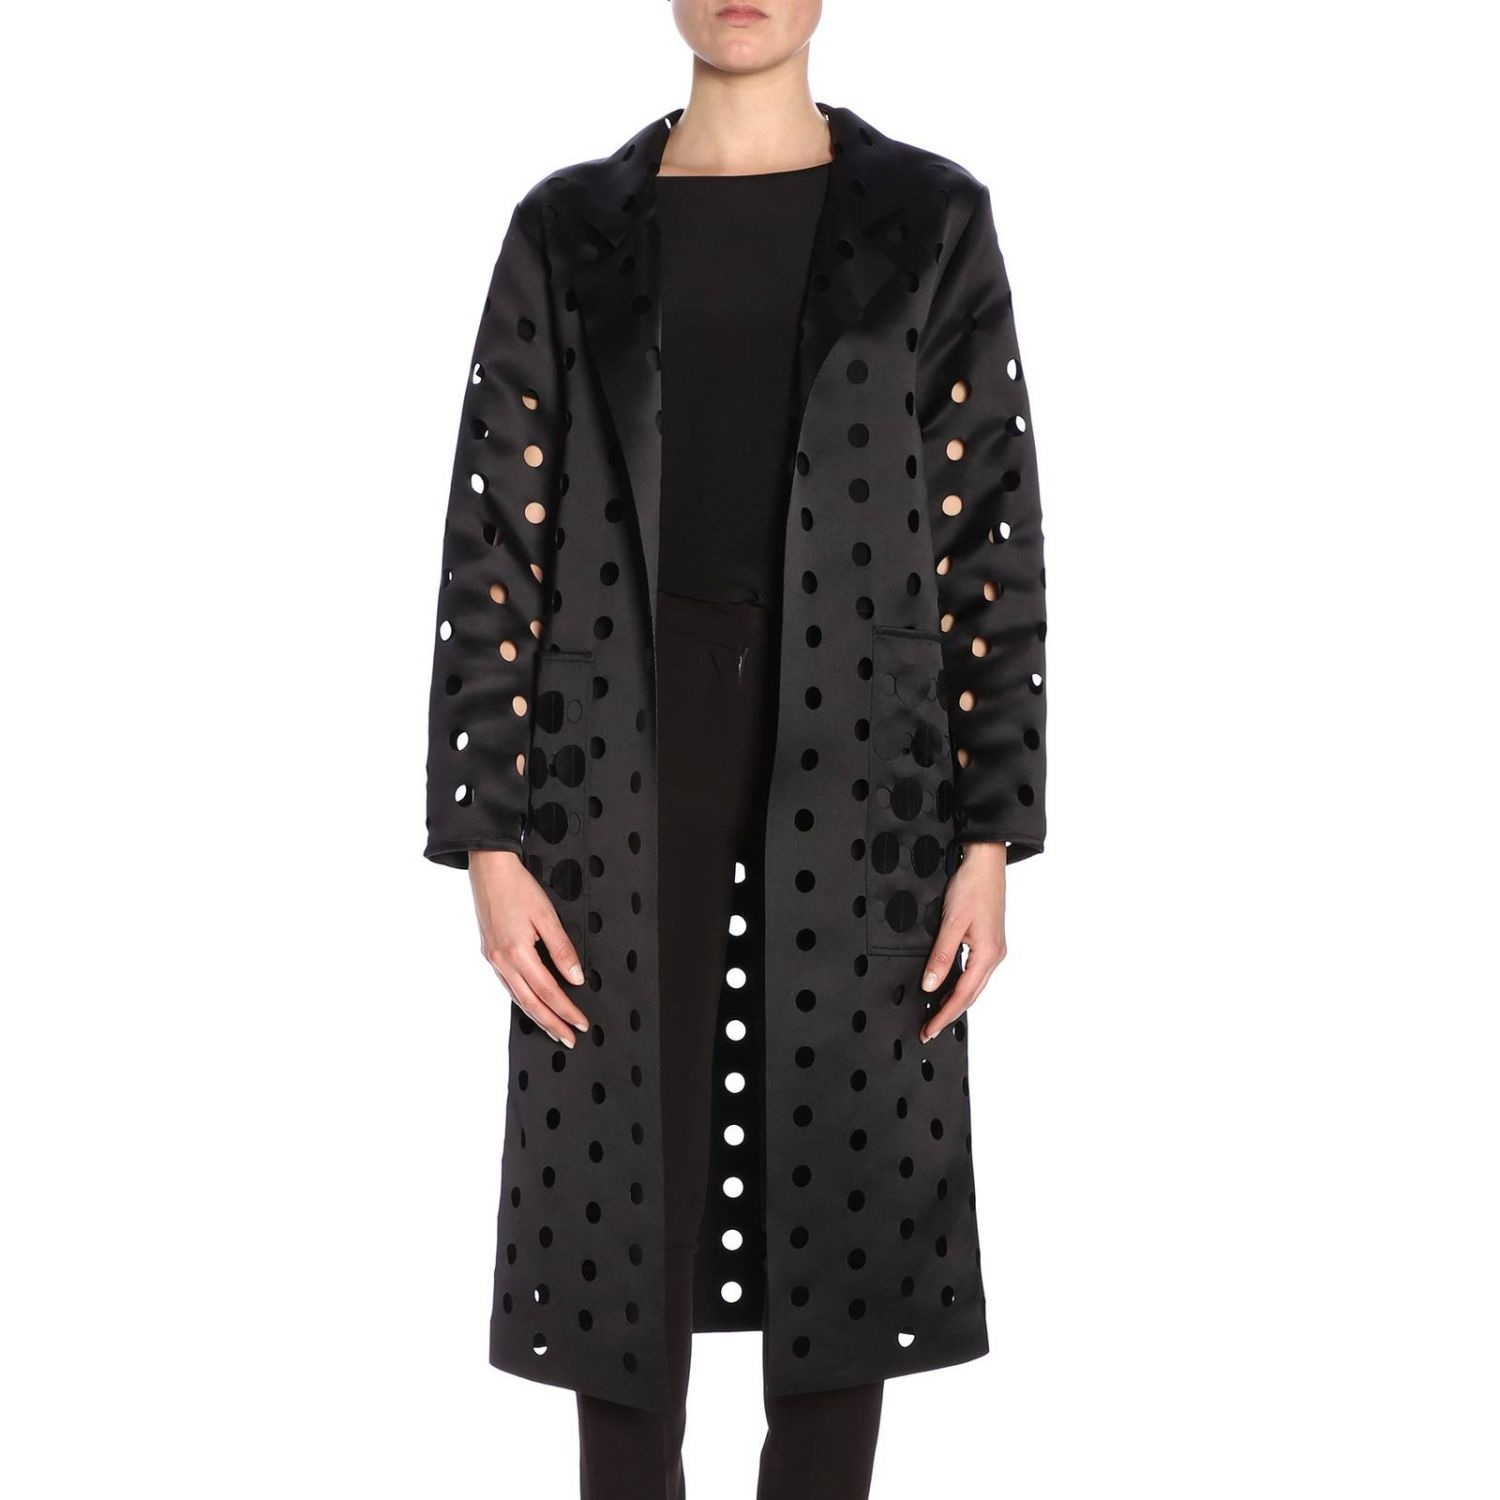 Cappotto donna Caban Romantic nero 1